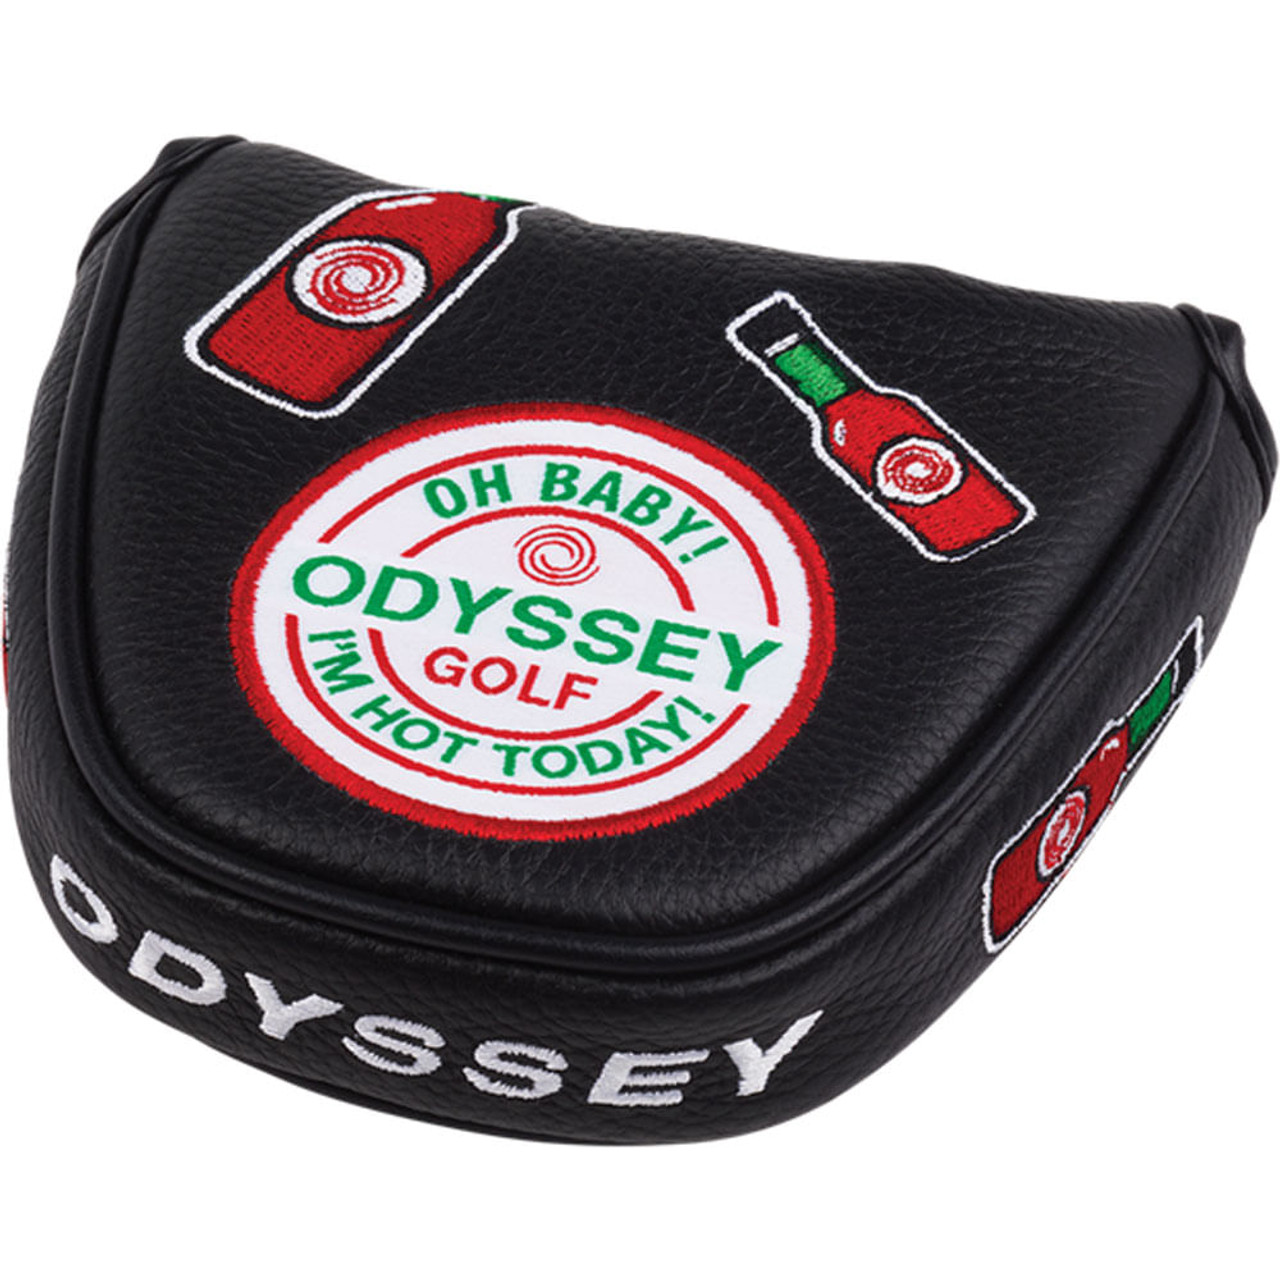 Odyssey Oh Baby Mallet Putter Headcover